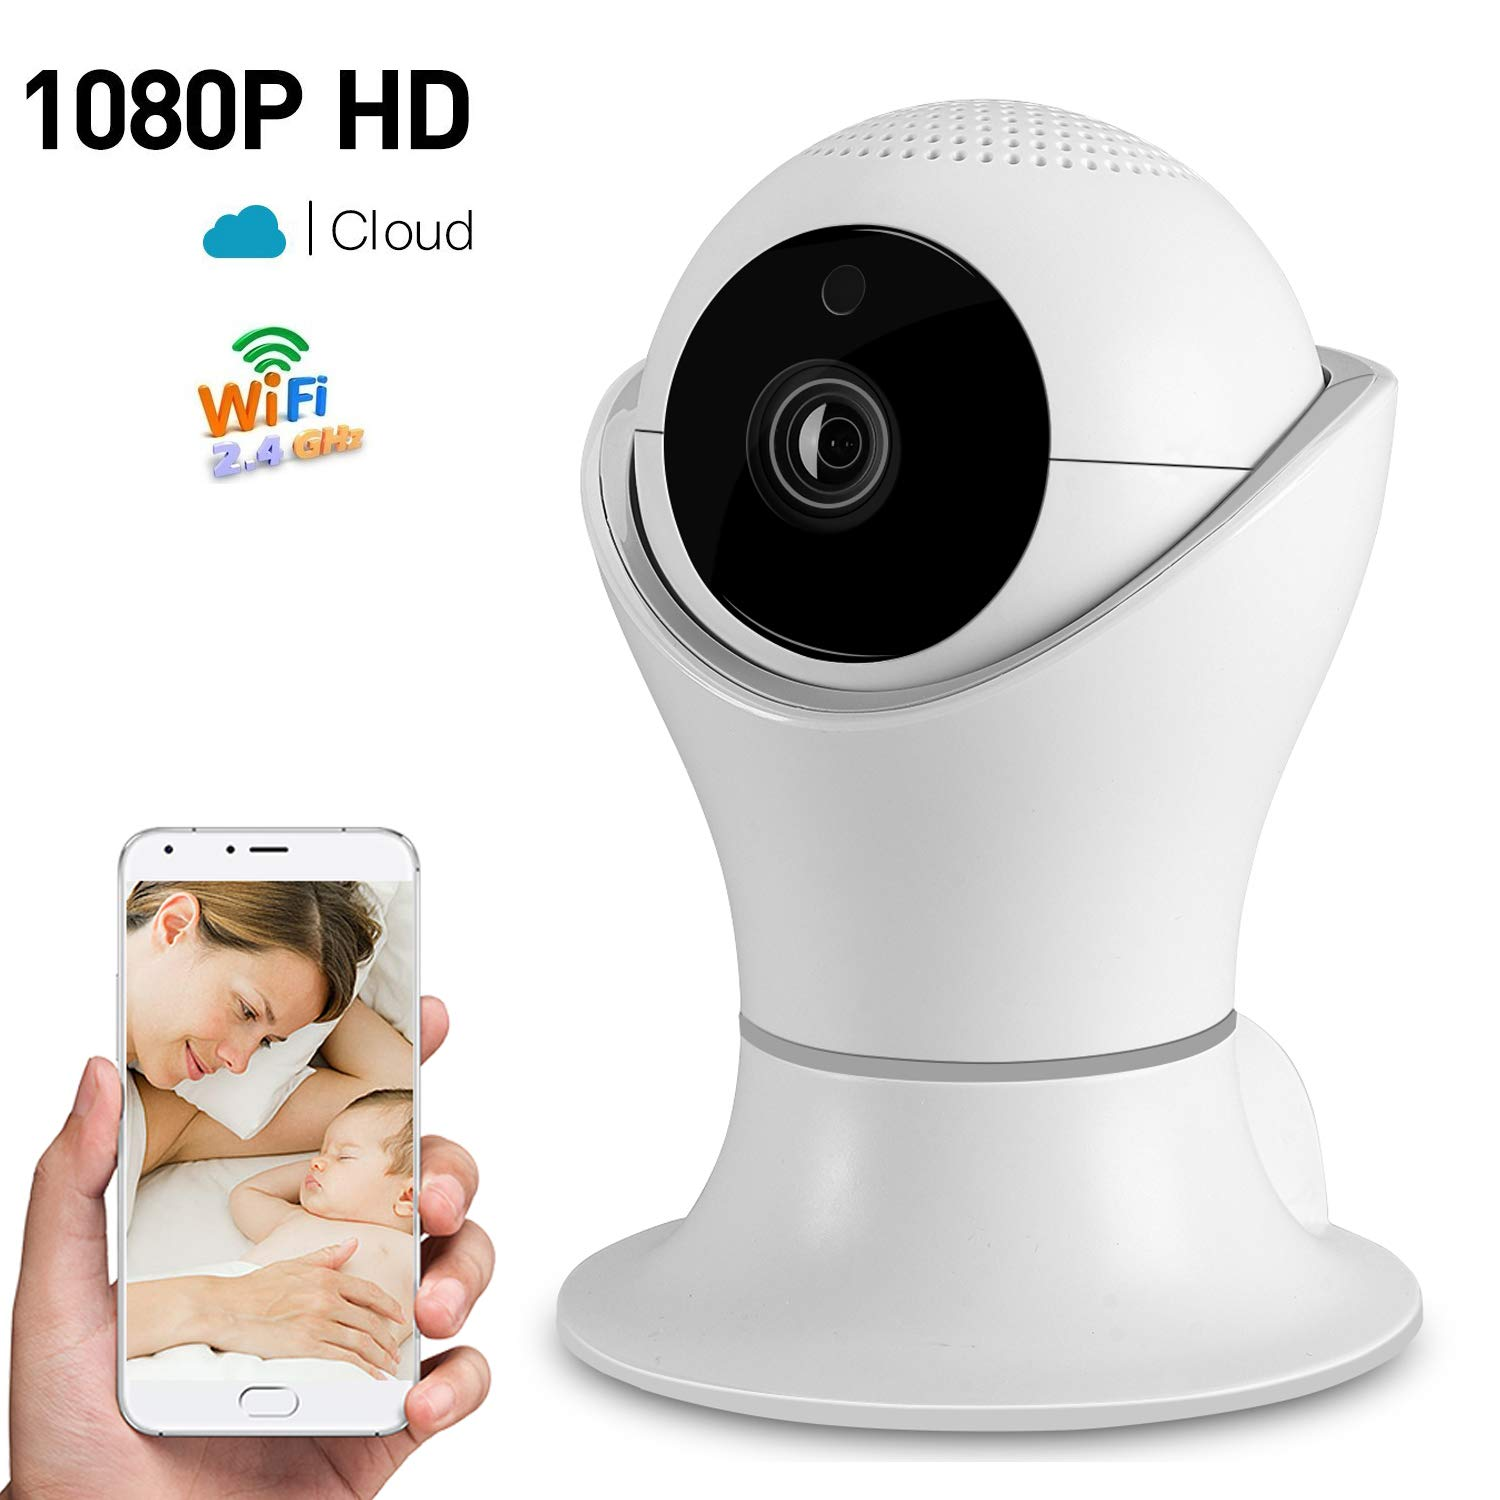 1080P Wireless Home Security IP Camera 360° Wifi Indoor Video Surveillance System Network Baby Monitor for Puppy Nanny Cloud Cam Night Vision Motion Detector Pan Tilt with 2 Way Audio APP Dome Webcam